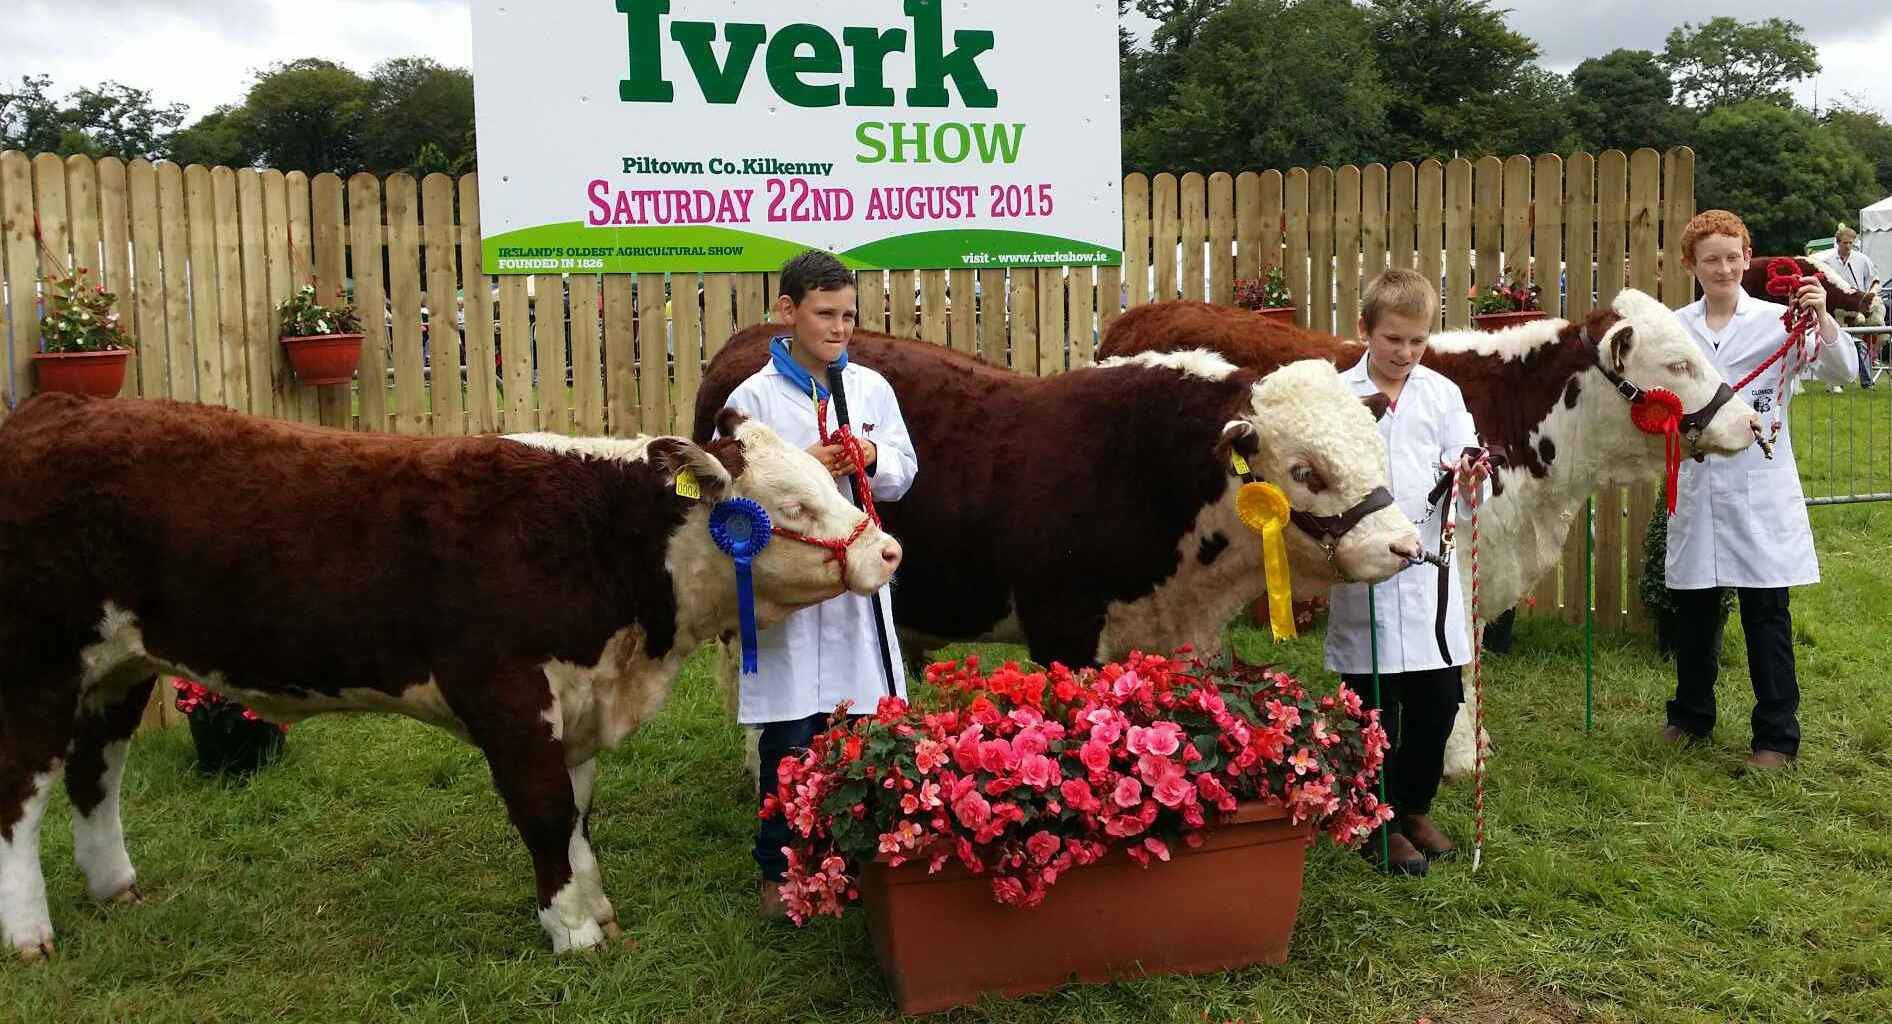 5 31 Hereford Street Glebe Young Handlers In Action At Iverk Show Conor